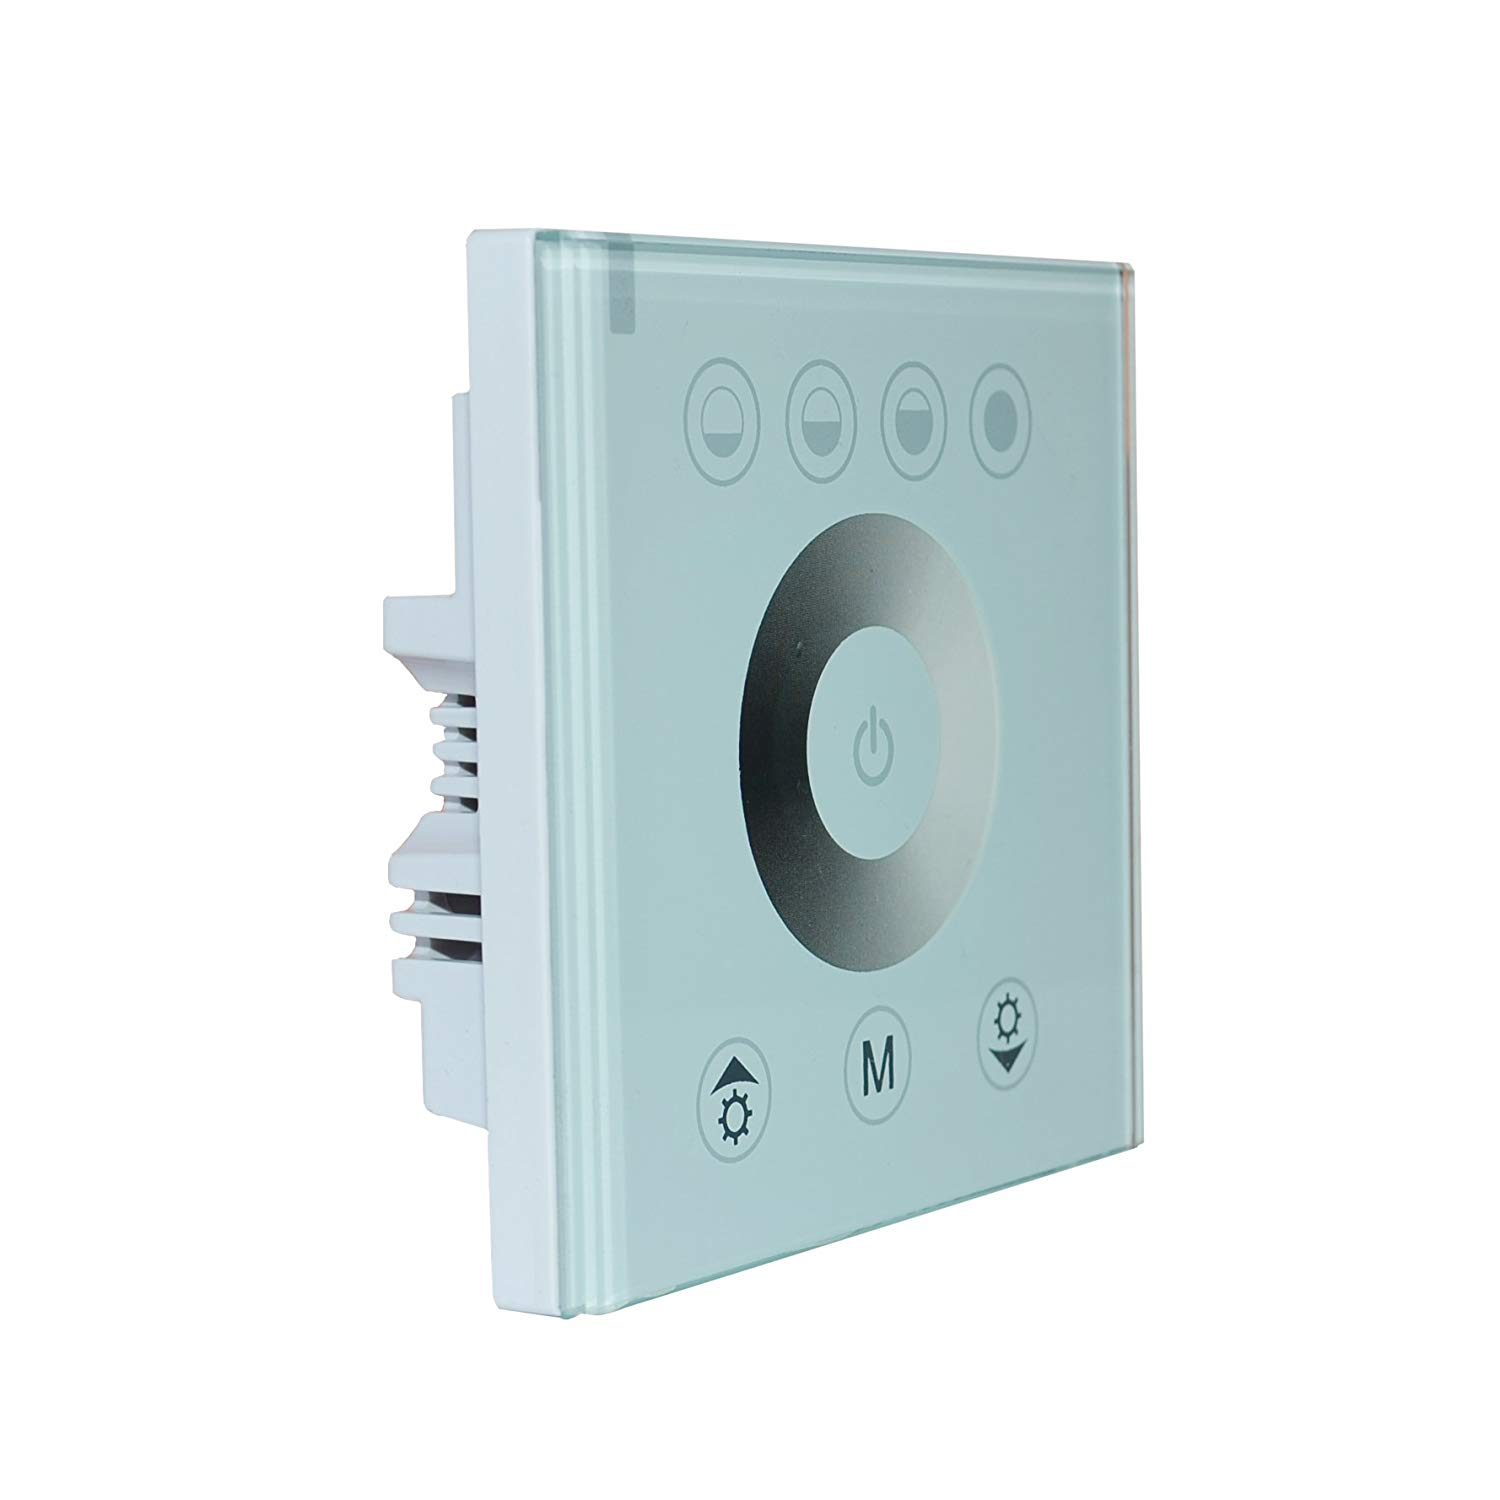 DC12v-24V Wall Mounted Touch Panel Controller Glass Panel Dimmer Switch For RGB RGBW LED Strip Light Controller (White Glass, Dimmer Controller)